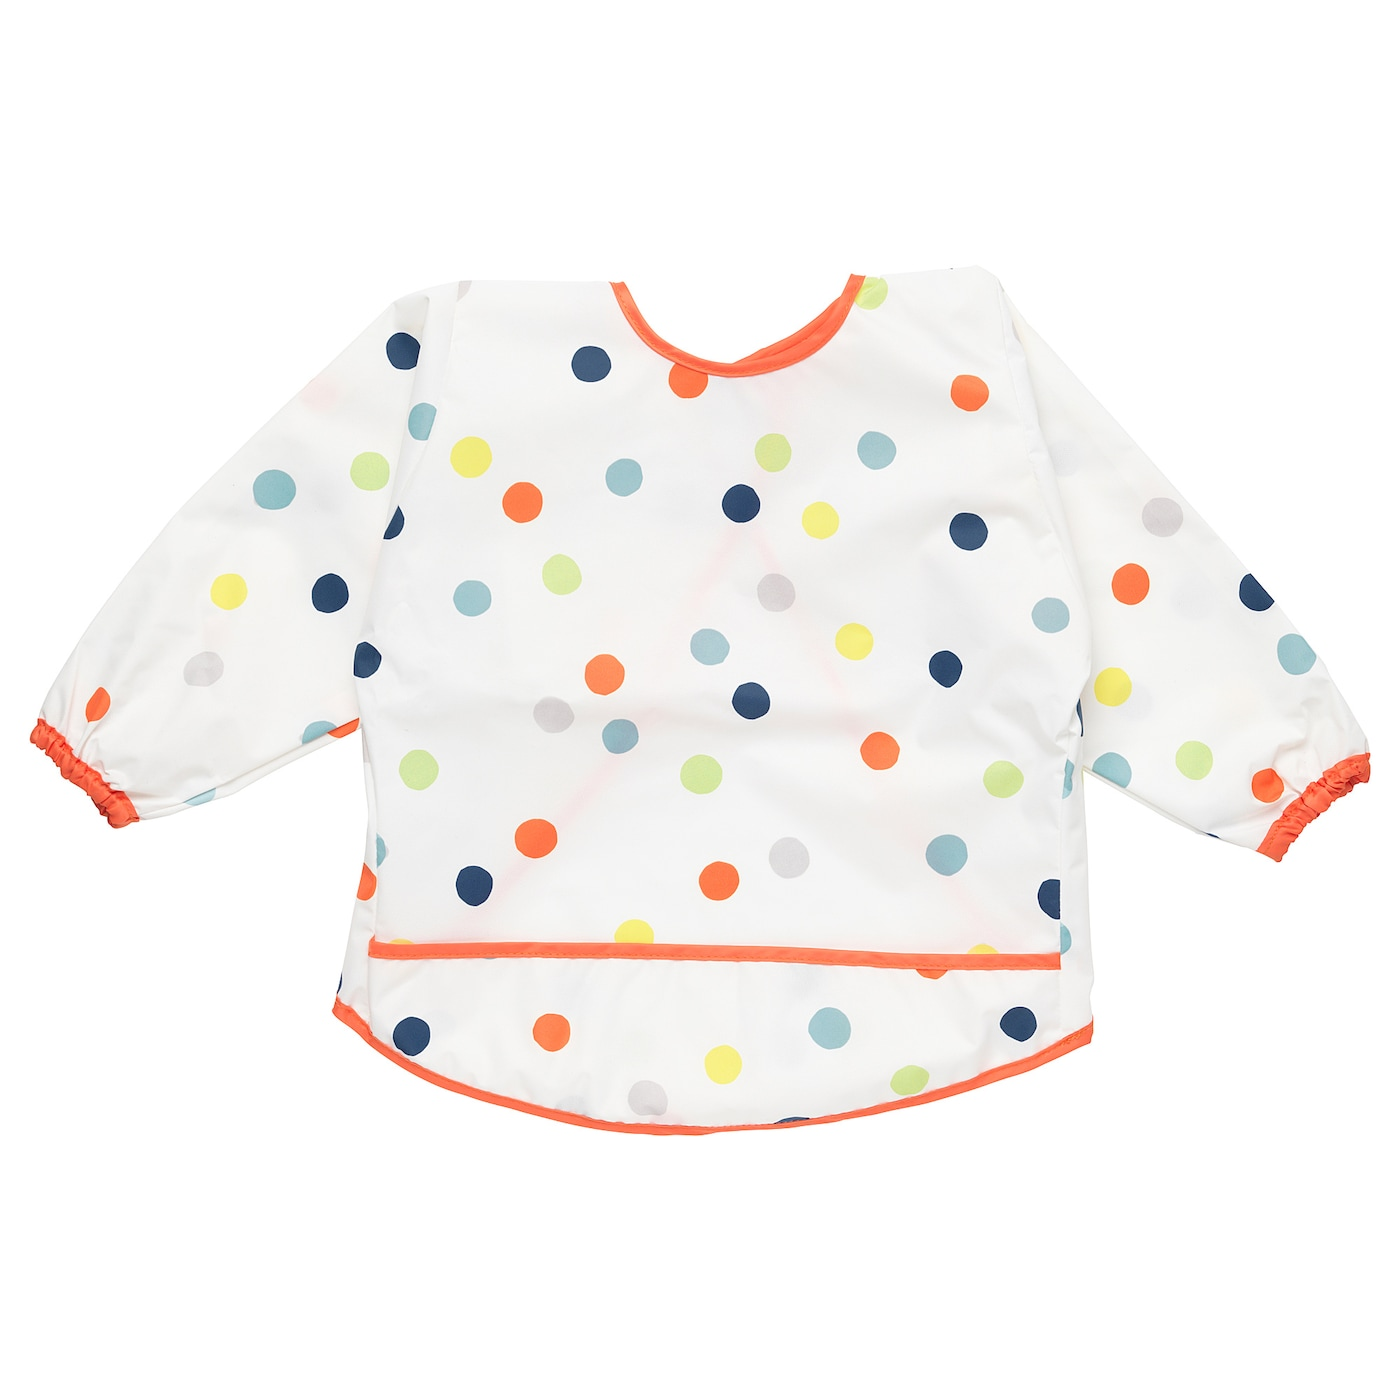 IKEA KLADDIG bib Just as practical for meals as when it's time to play, paint, do crafts or bake.